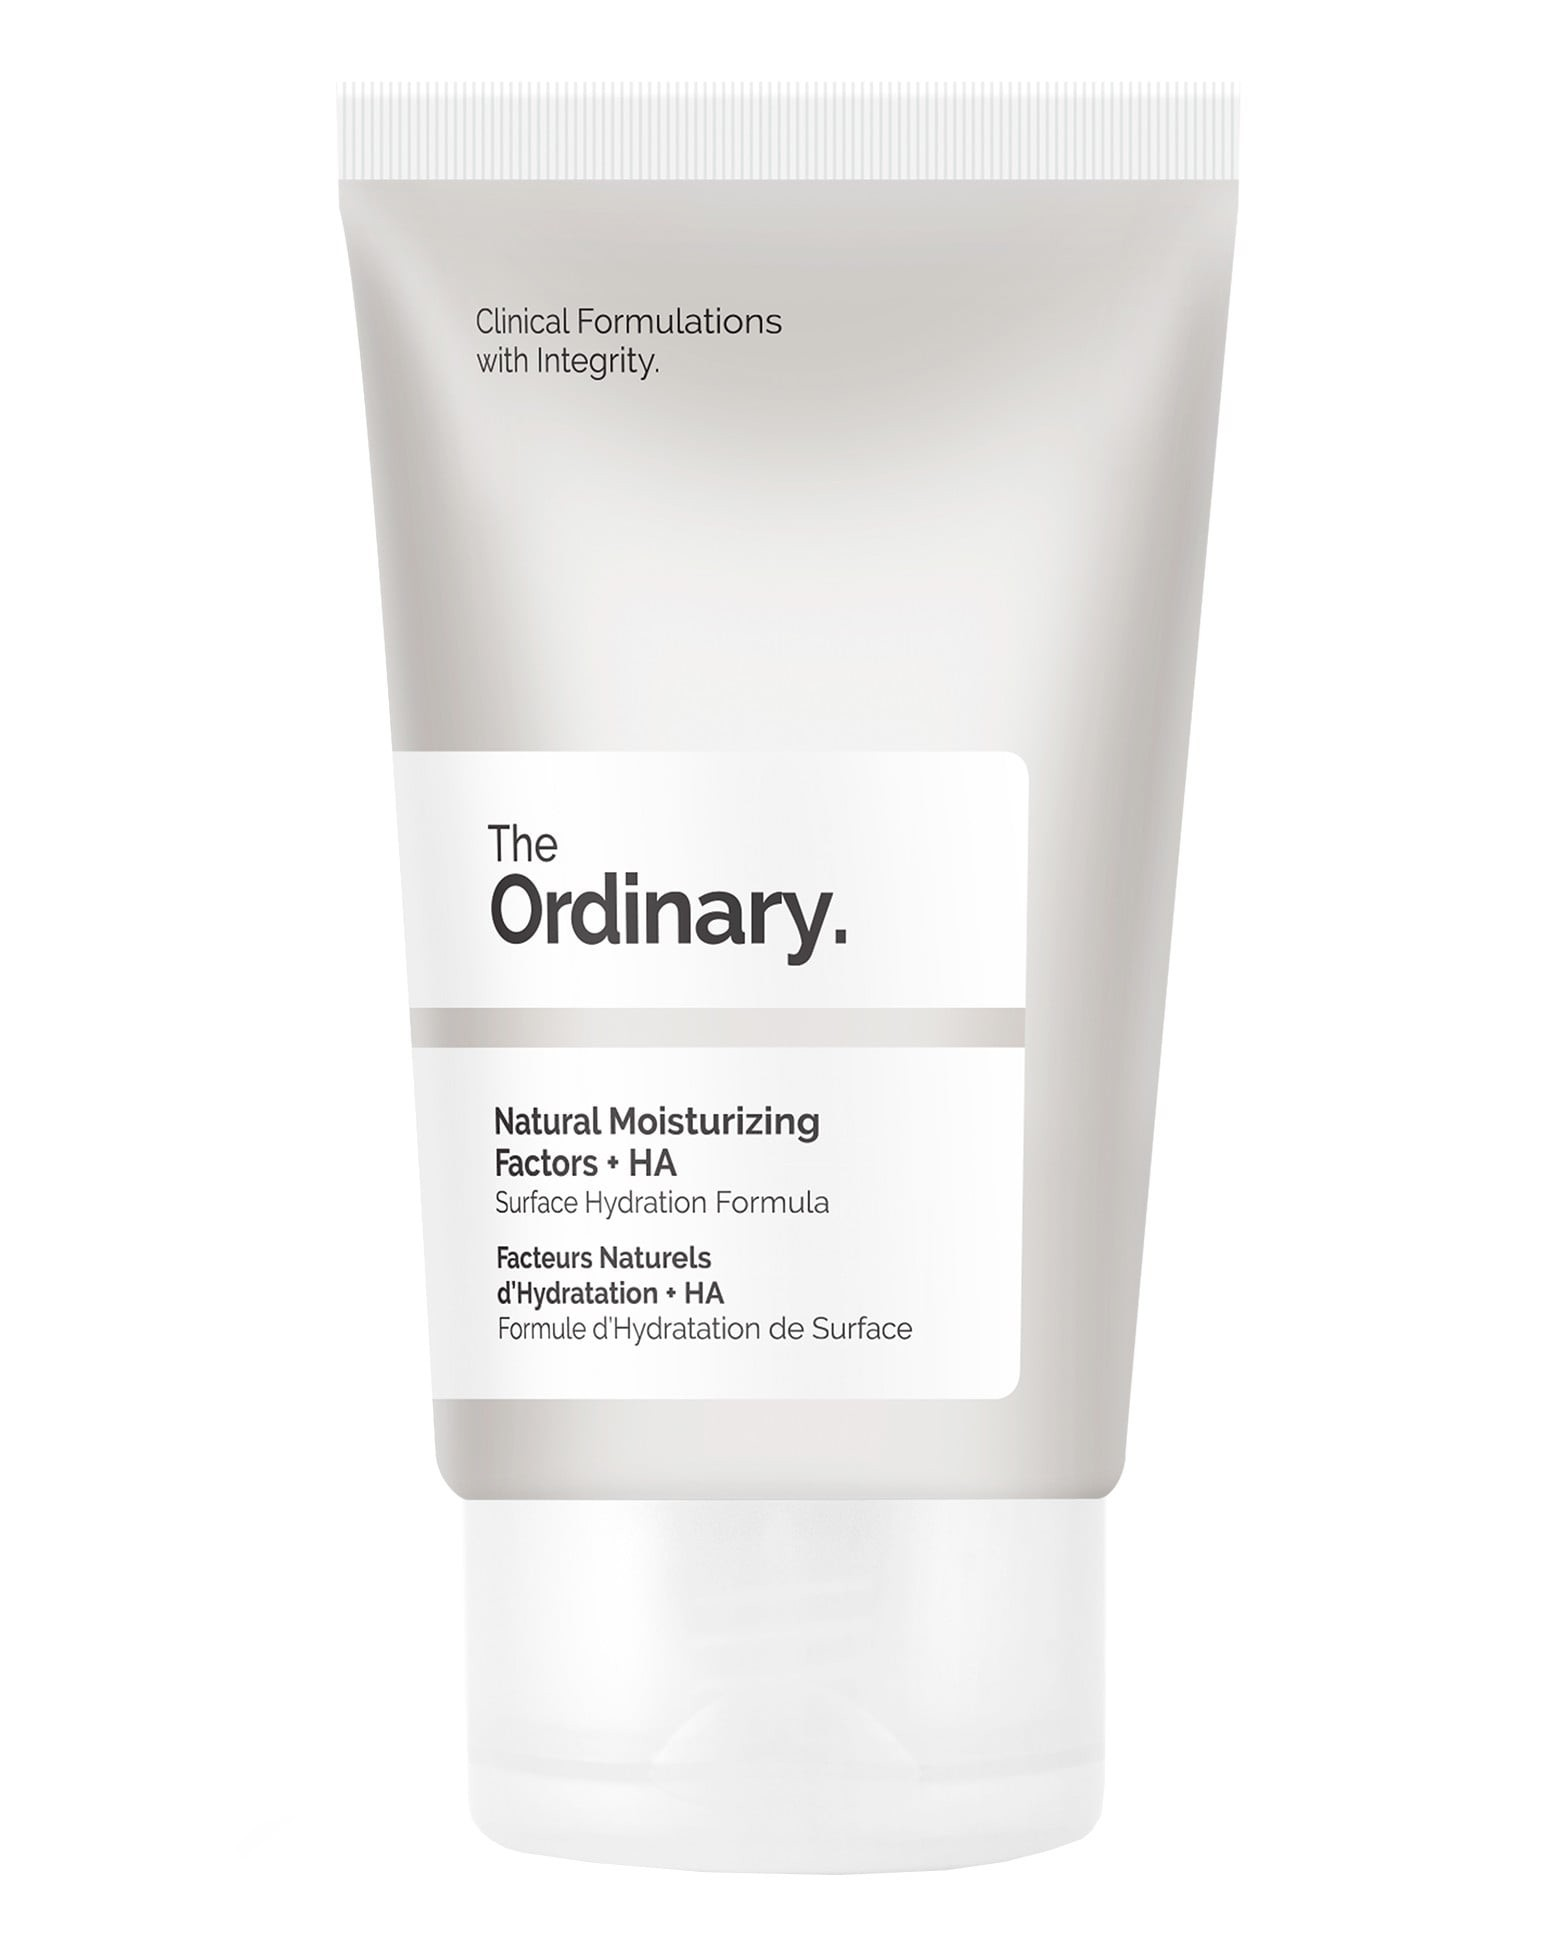 the Ordinary Moisturising Factors cream, pictured in packaging tube.